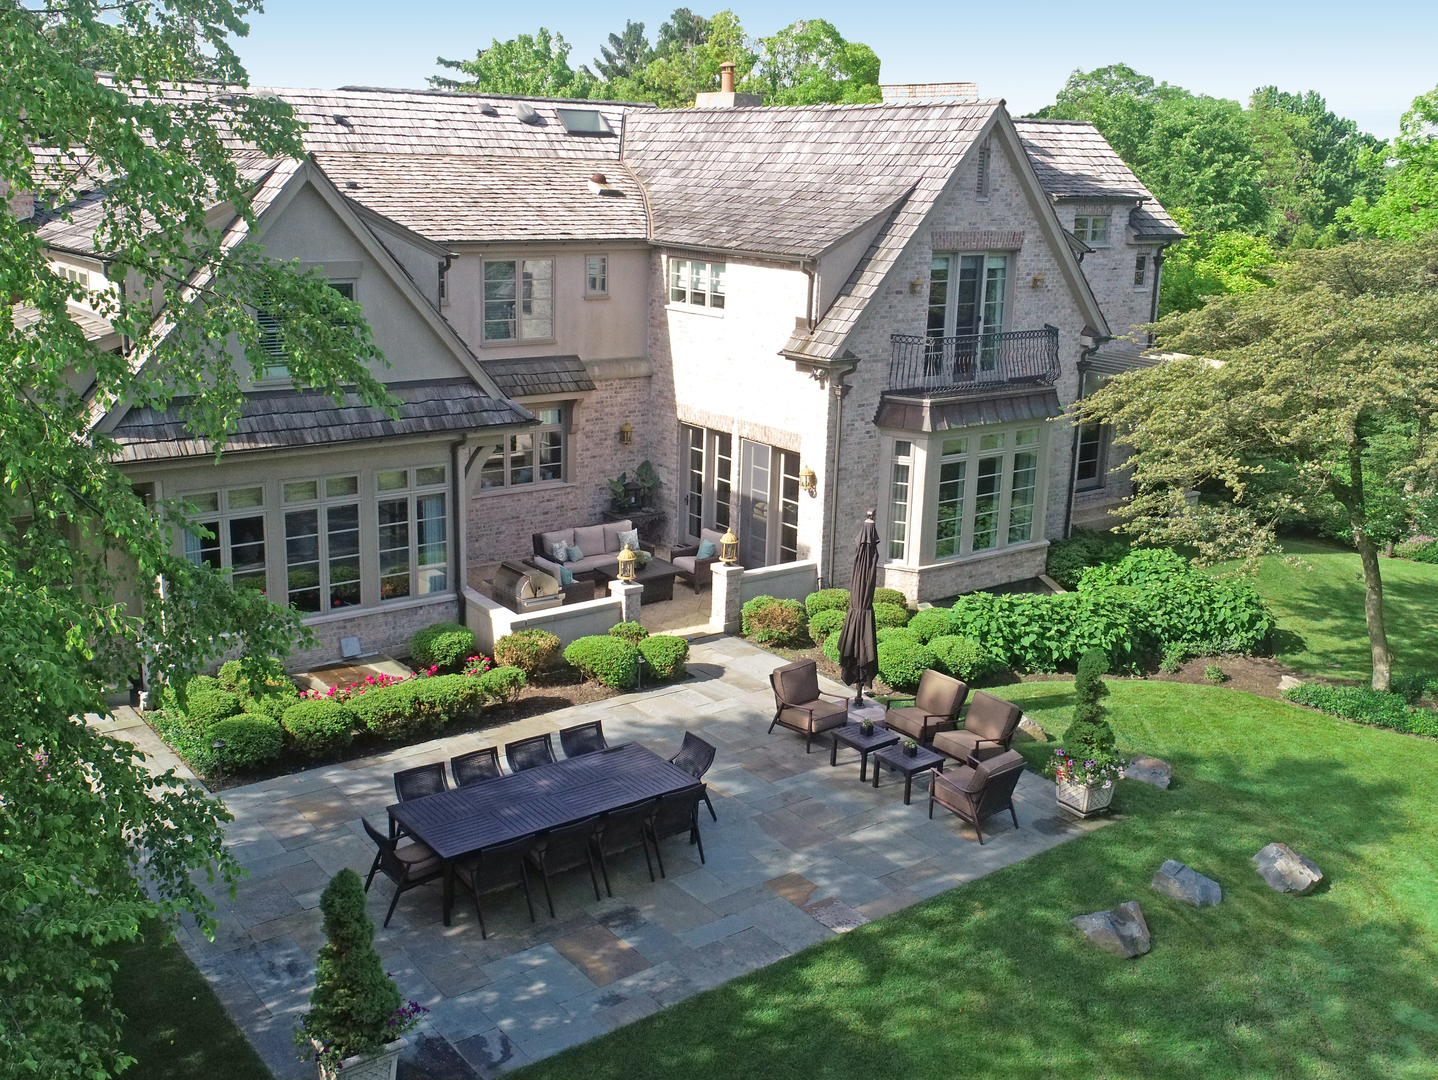 188 East Foster, Lake Forest, Illinois, 60045